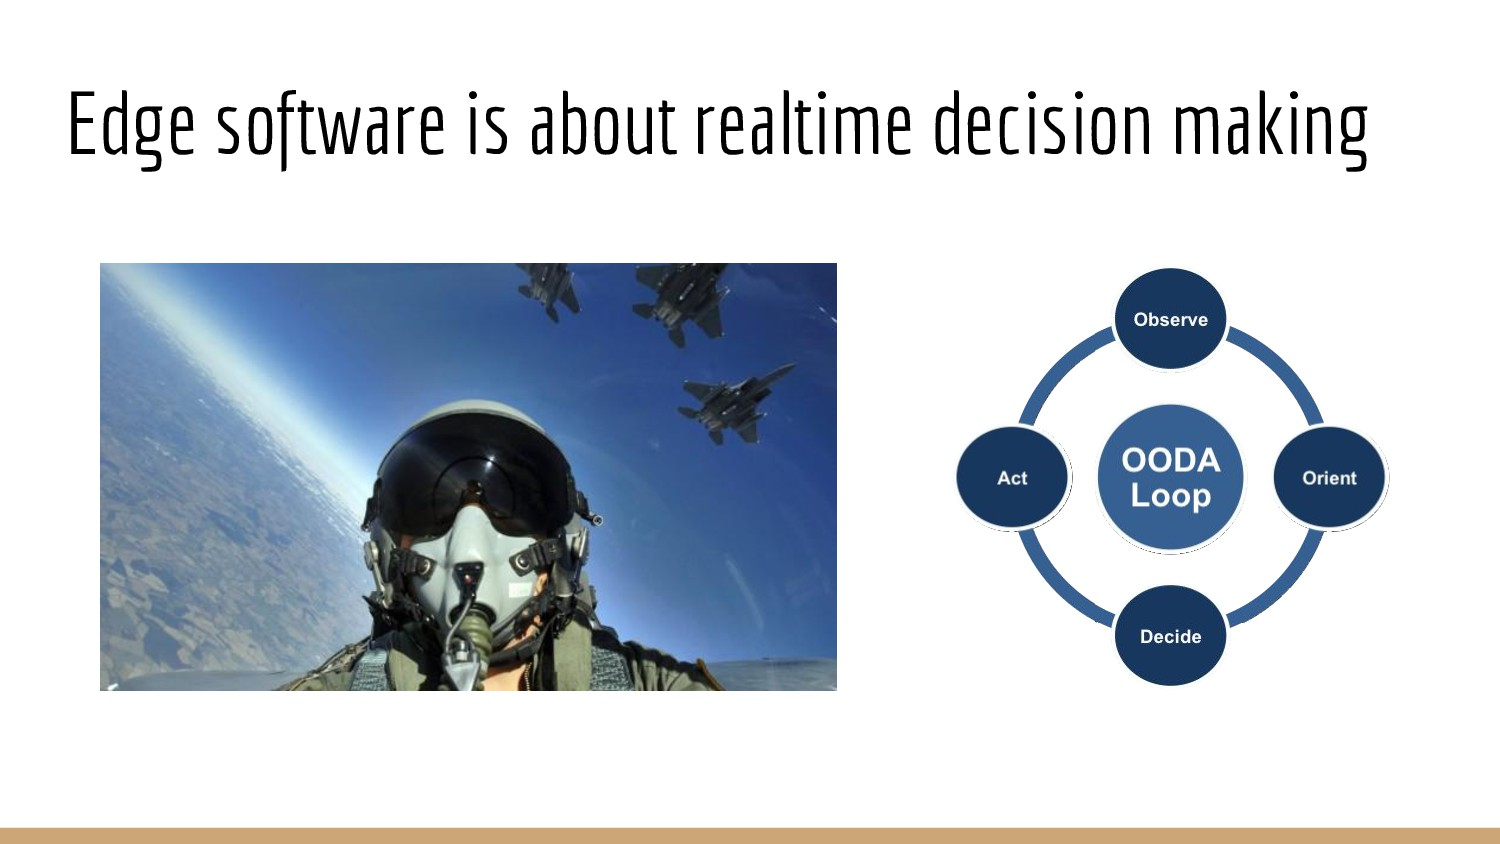 Edge software is about realtime decision making